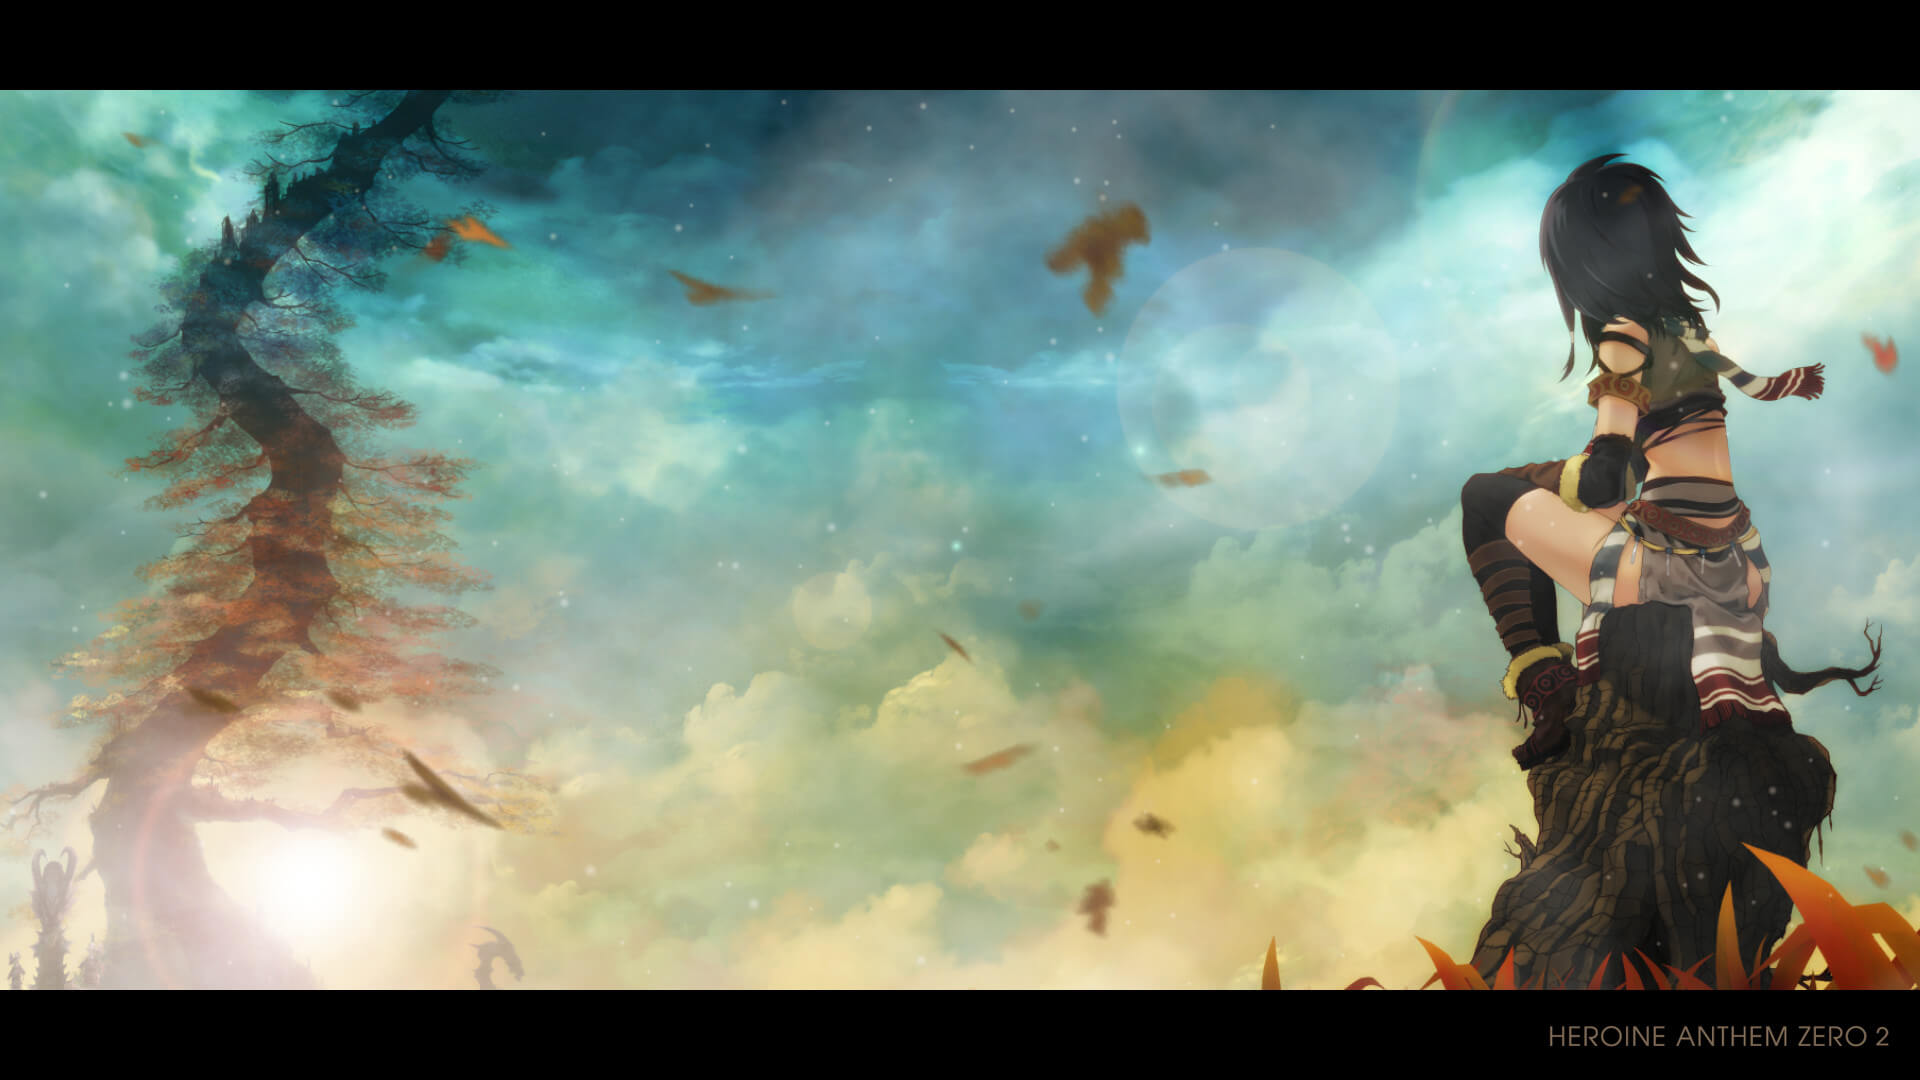 Heroine Anthem Zero 2 Now in Early Access on Steam